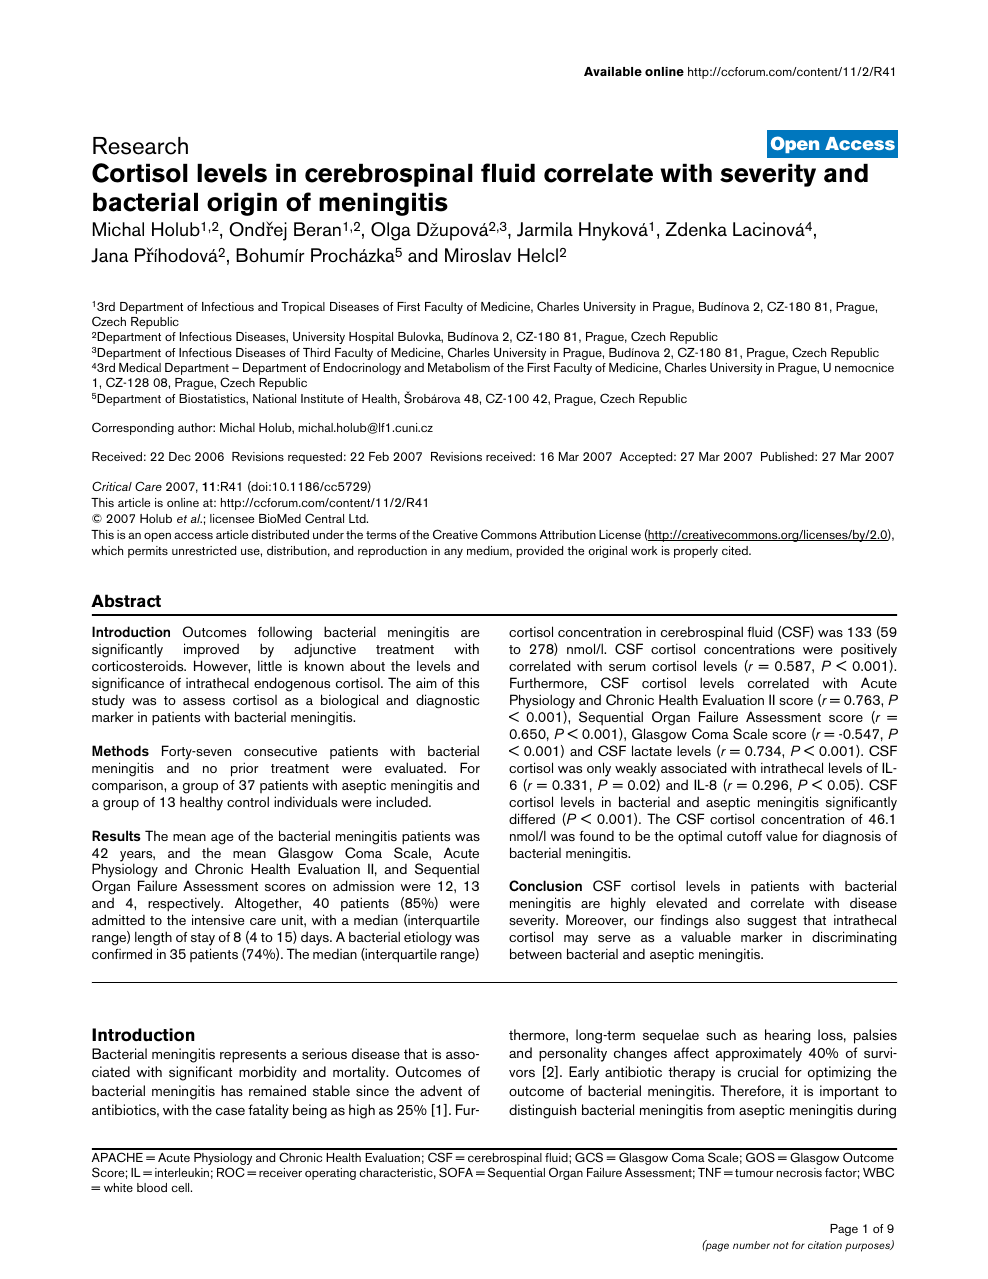 Cortisol levels in cerebrospinal fluid correlate with severity and  bacterial origin of meningitis – topic of research paper in Clinical  medicine. Download scholarly article PDF and read for free on CyberLeninka  open